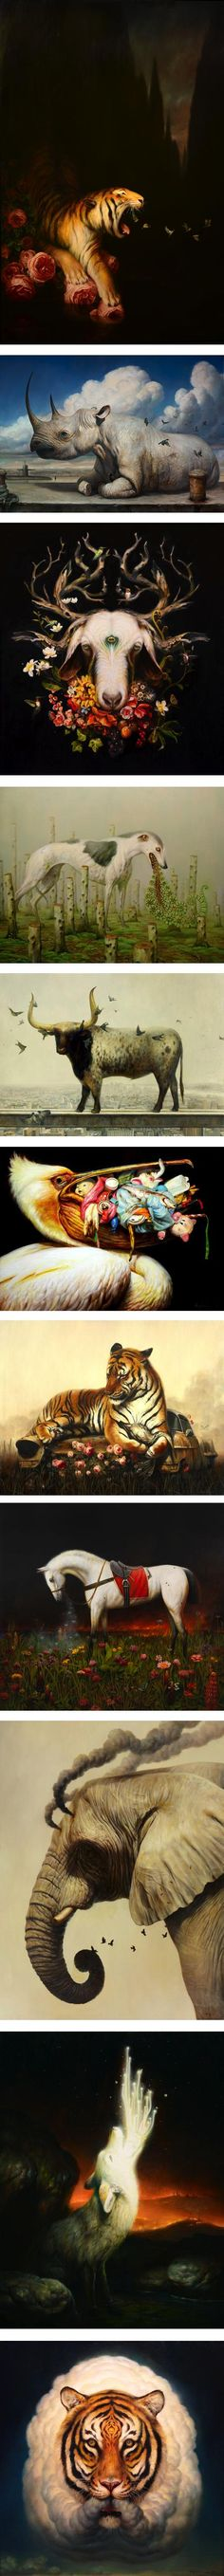 Martin Wittfooth (update) | Lines and Colors :: a blog about drawing, painting, illustration, comics, concept art and other visual arts